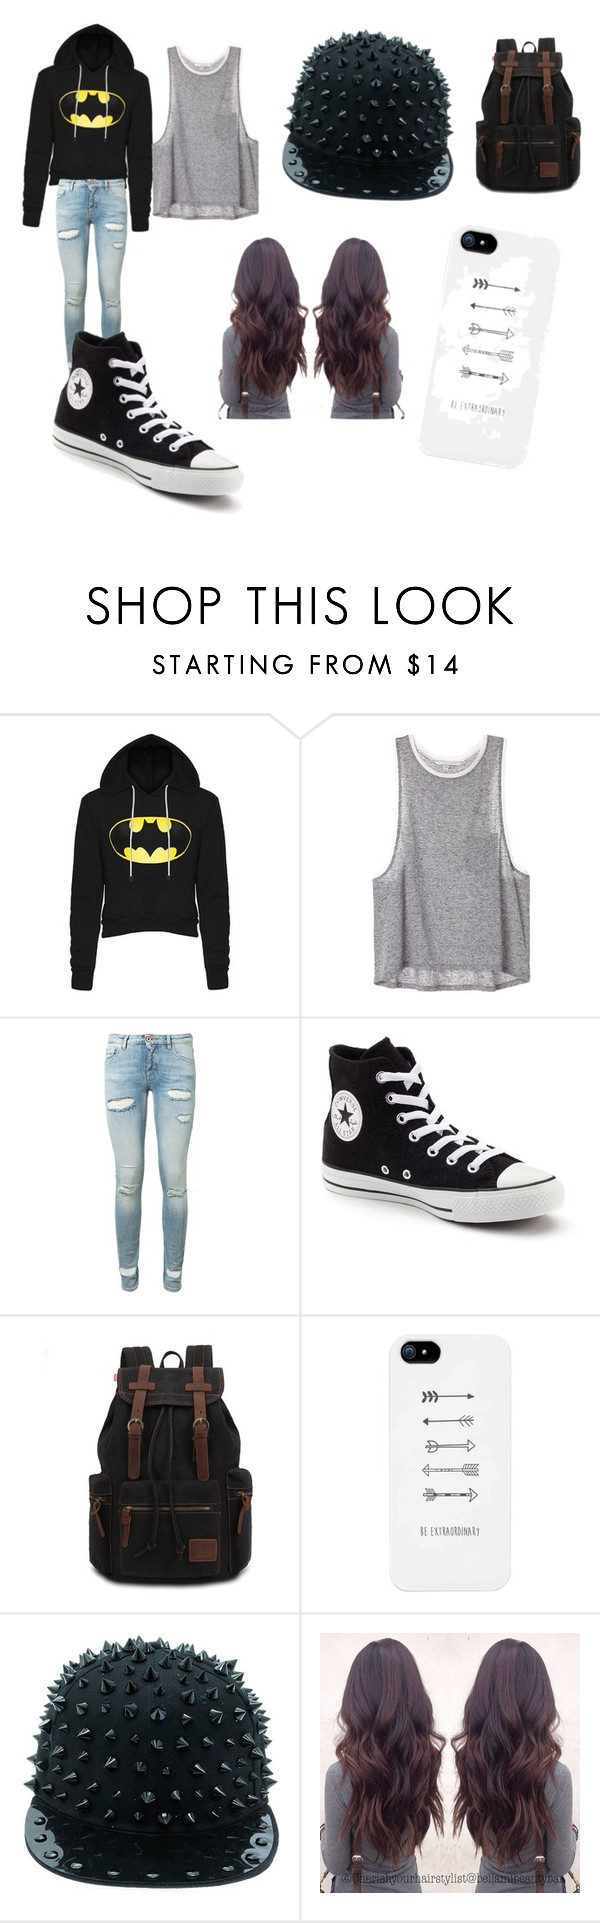 """movies"" by wwediva12345 ❤ liked on Polyvore featuring beauty, Off-White and Converse"